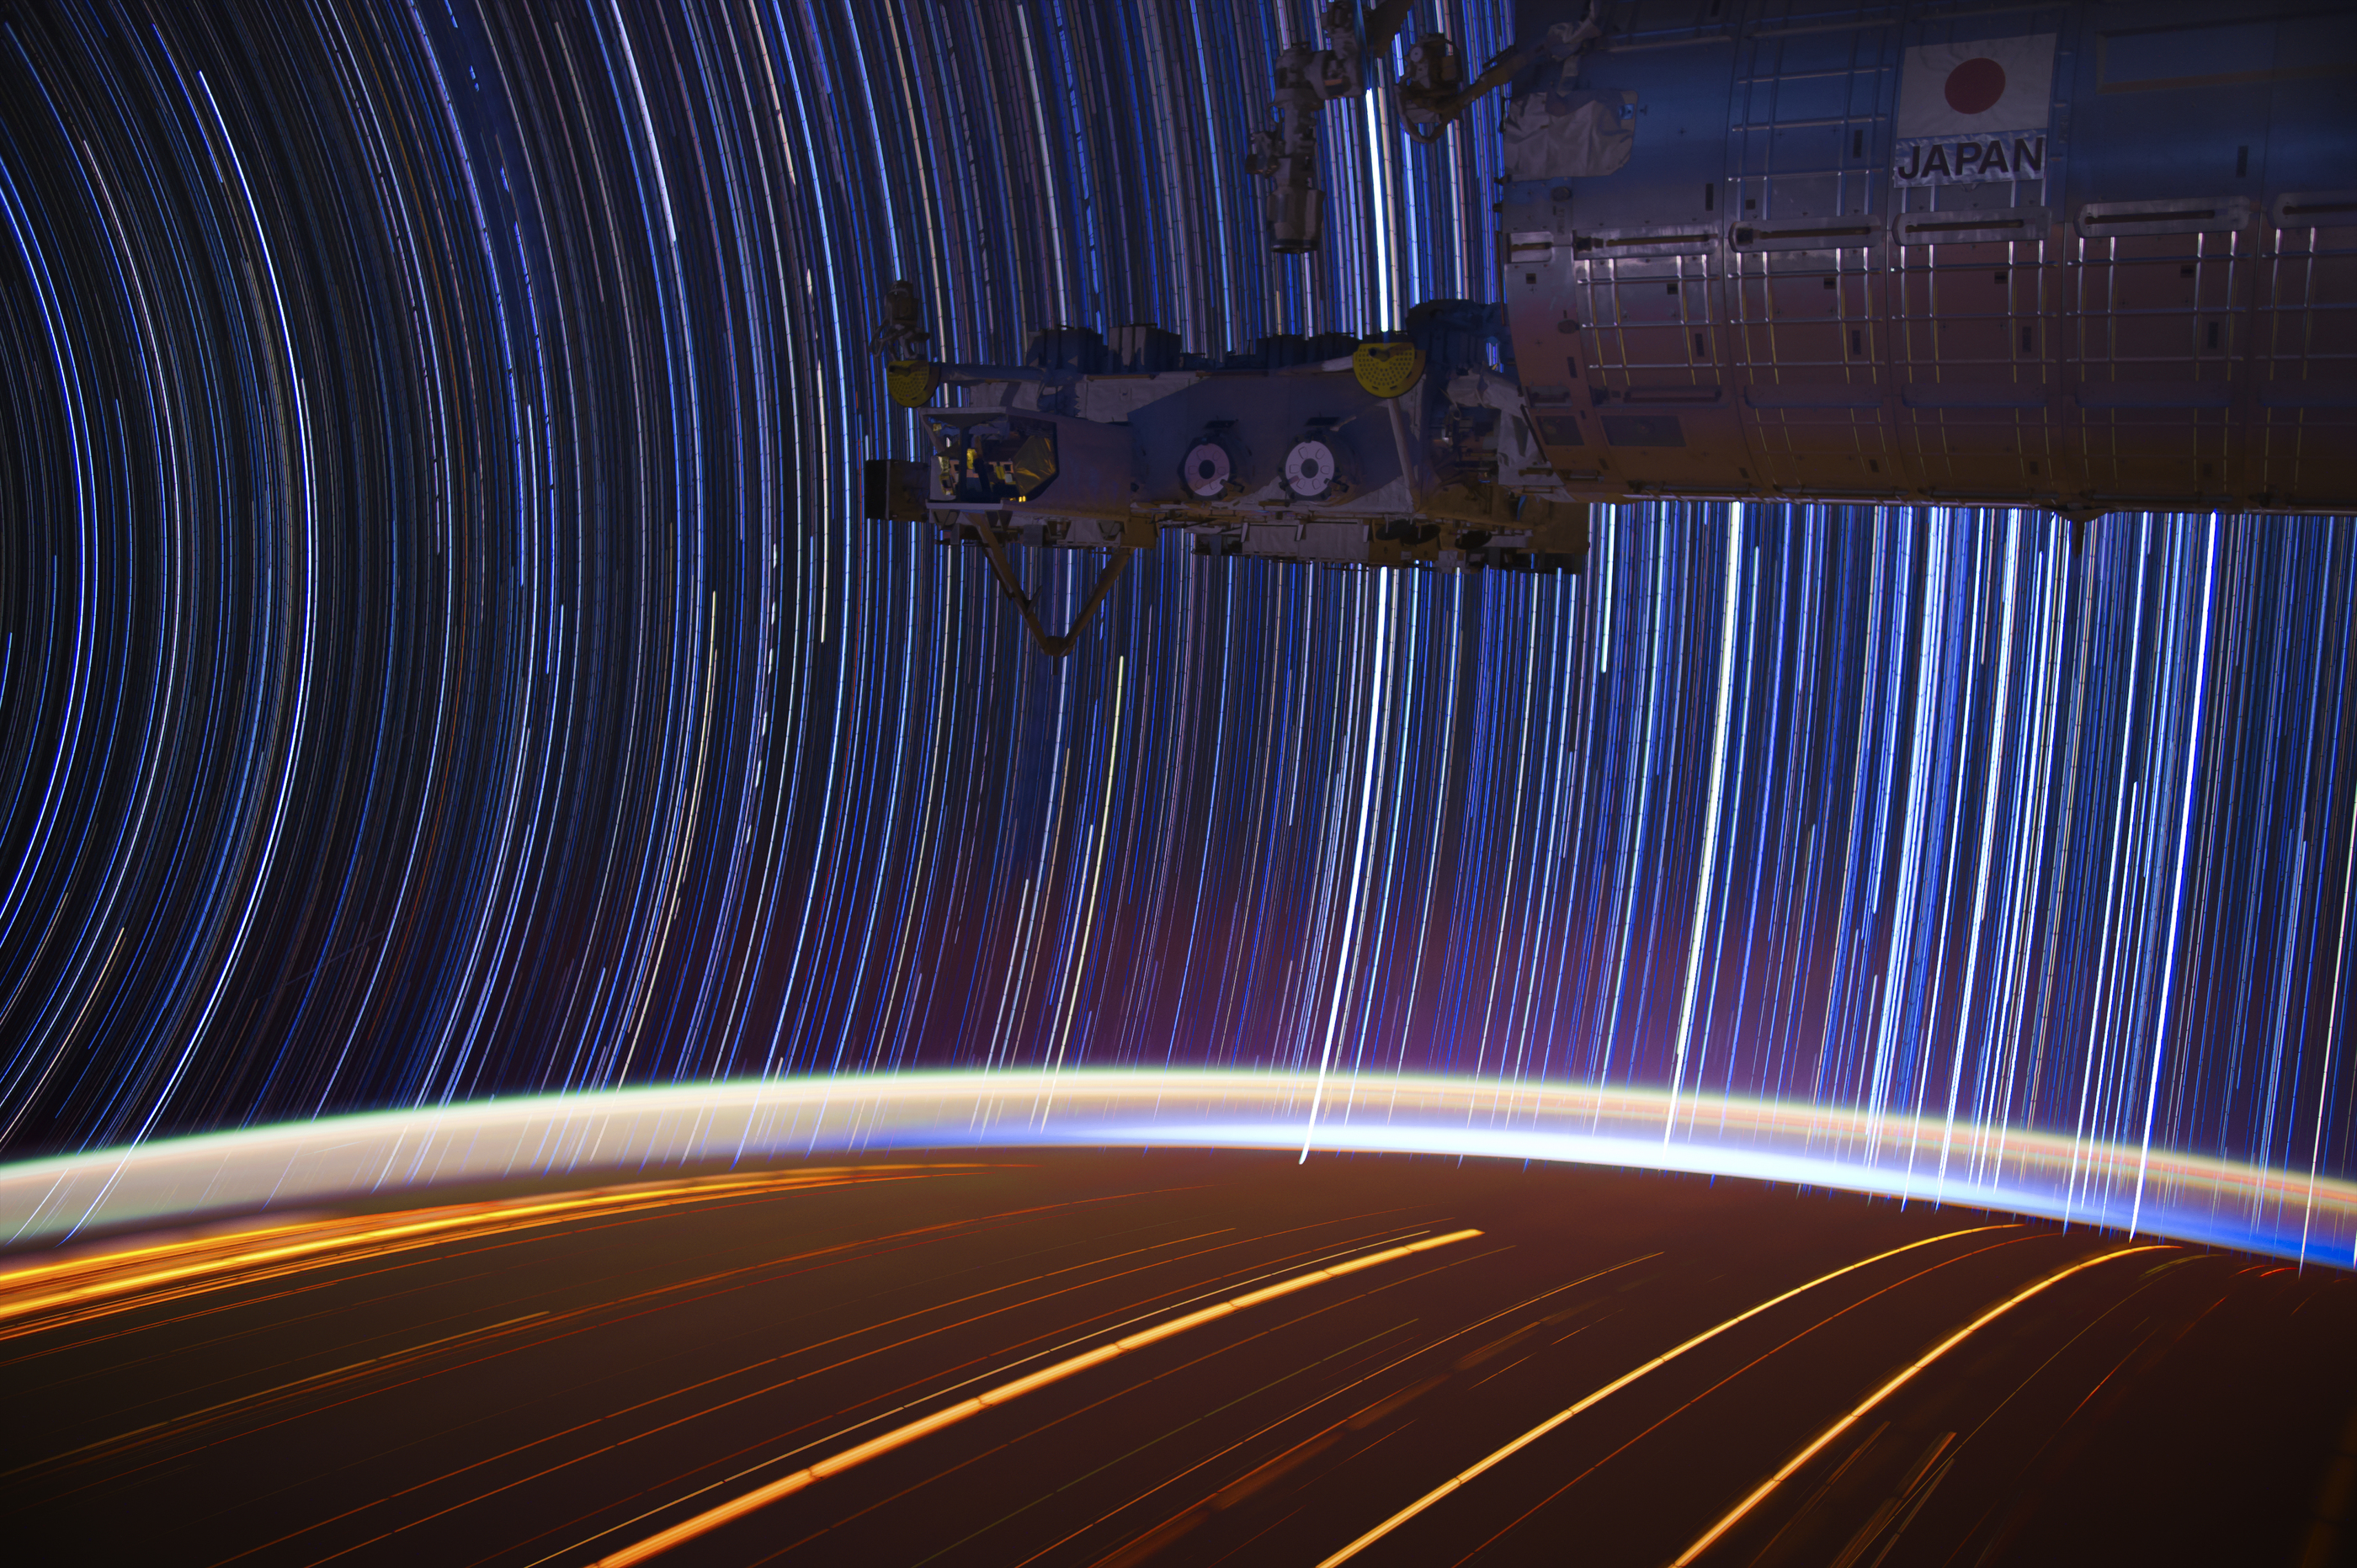 http://www.pri.org/sites/default/files/www.sciencefriday.com/wp-content/uploads/2016/12/star-trail-15a-copy.jpg